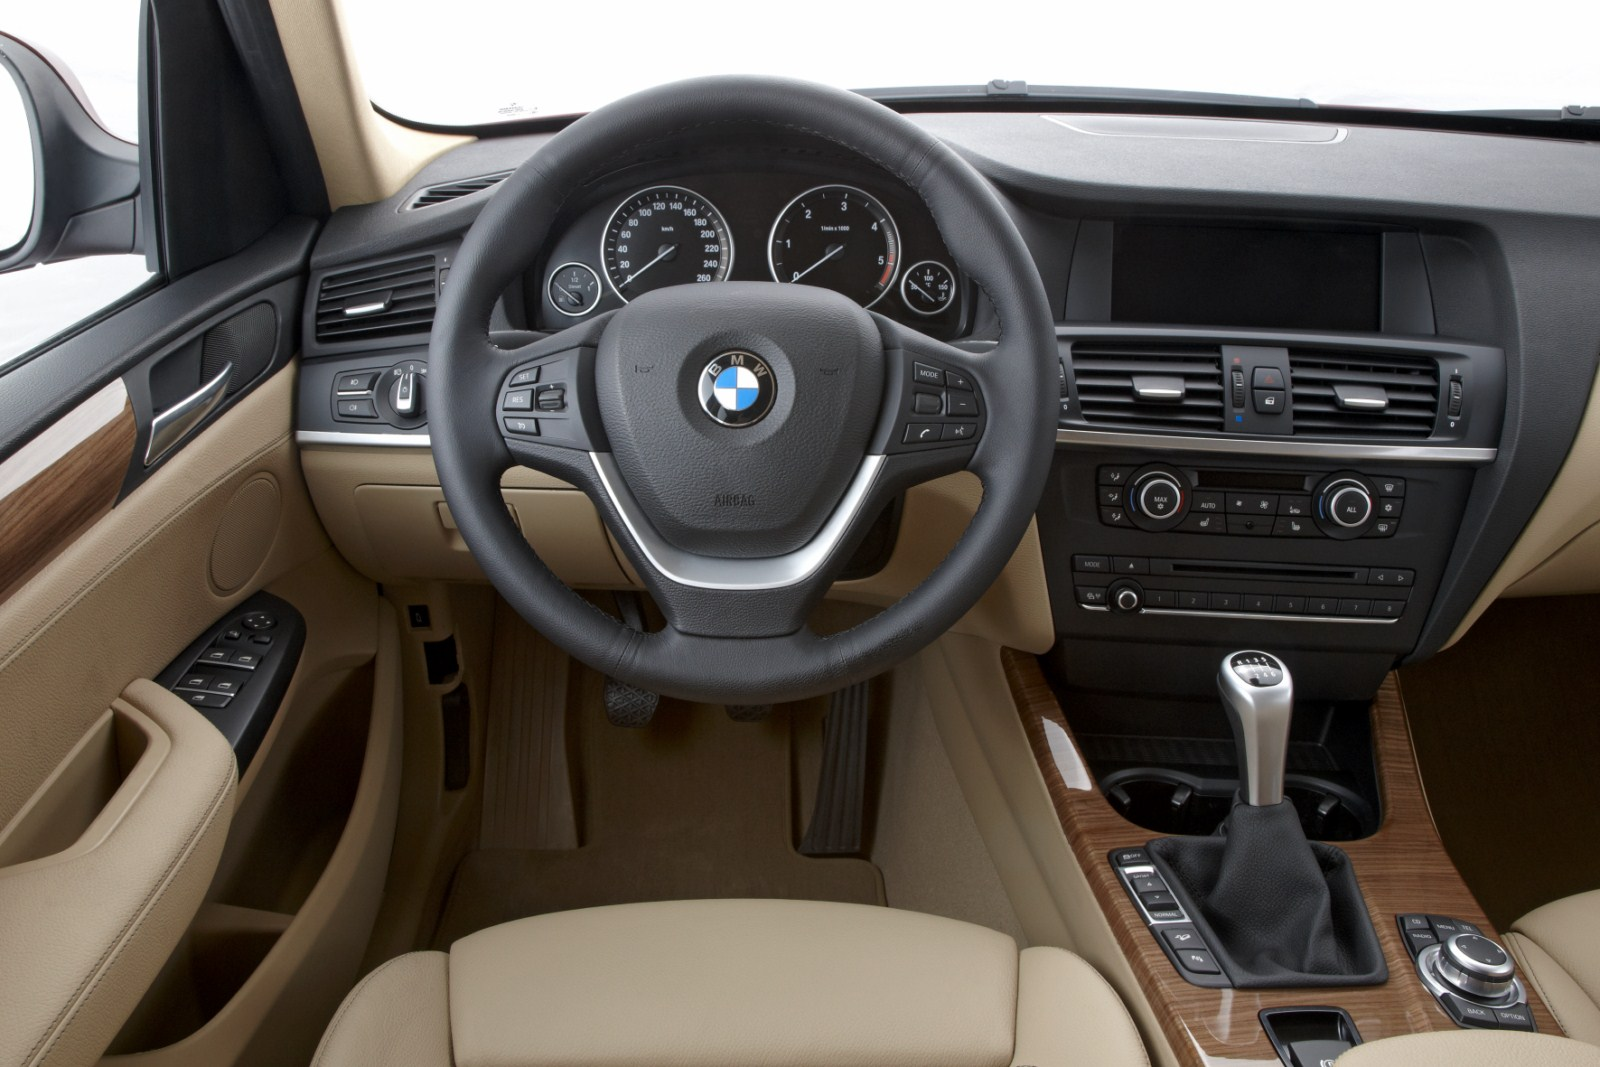 The New 2017 Bmw X3 Interior Explained